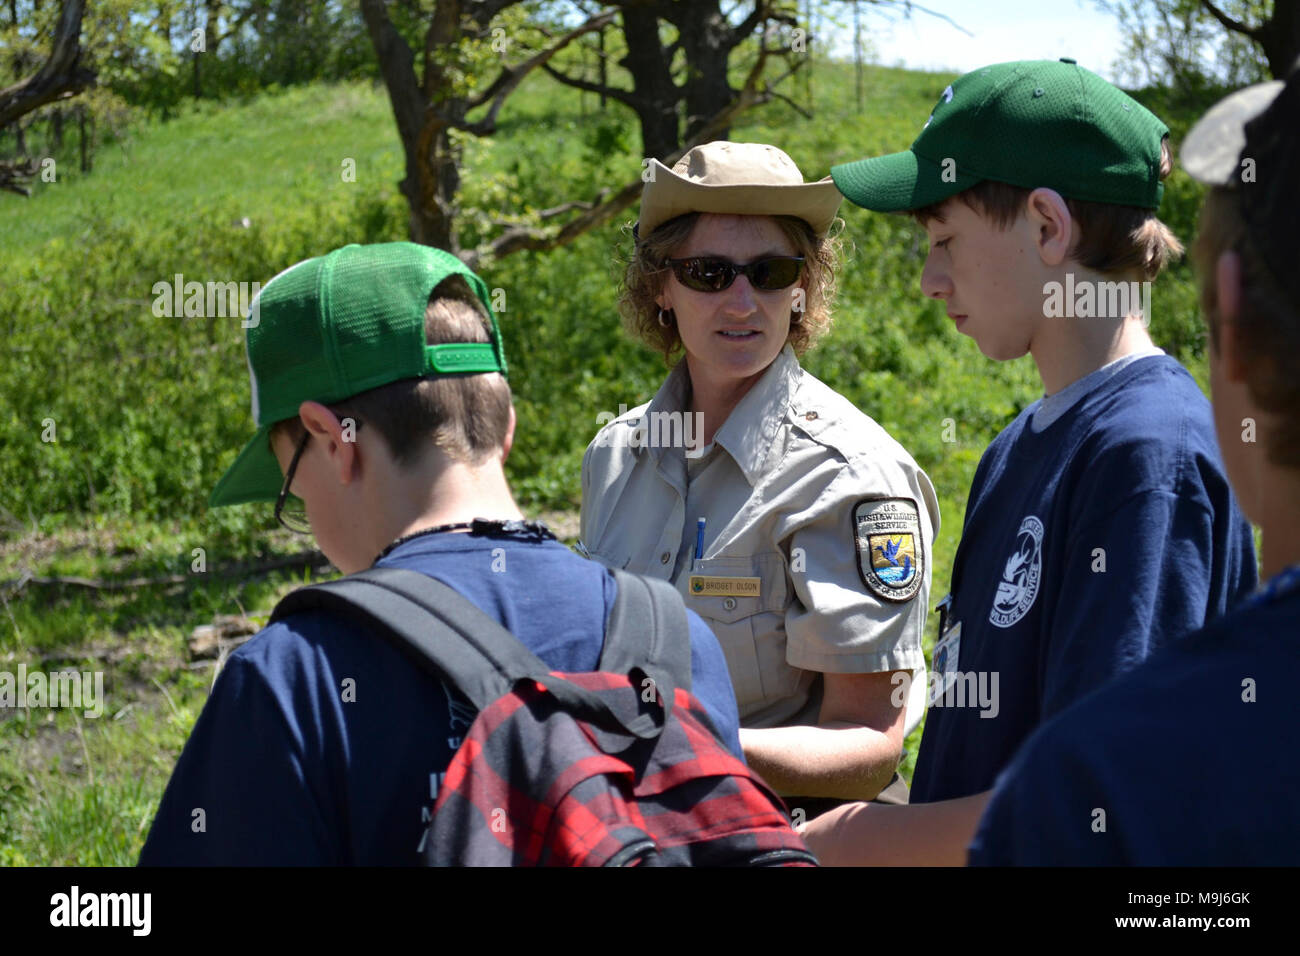 Litchfield Wetland Management District Wildlife Refuge Specialist Bridget Olson taught scouts about the concept of vectors. Photo by Tina Shaw/USFWS. - Stock Image